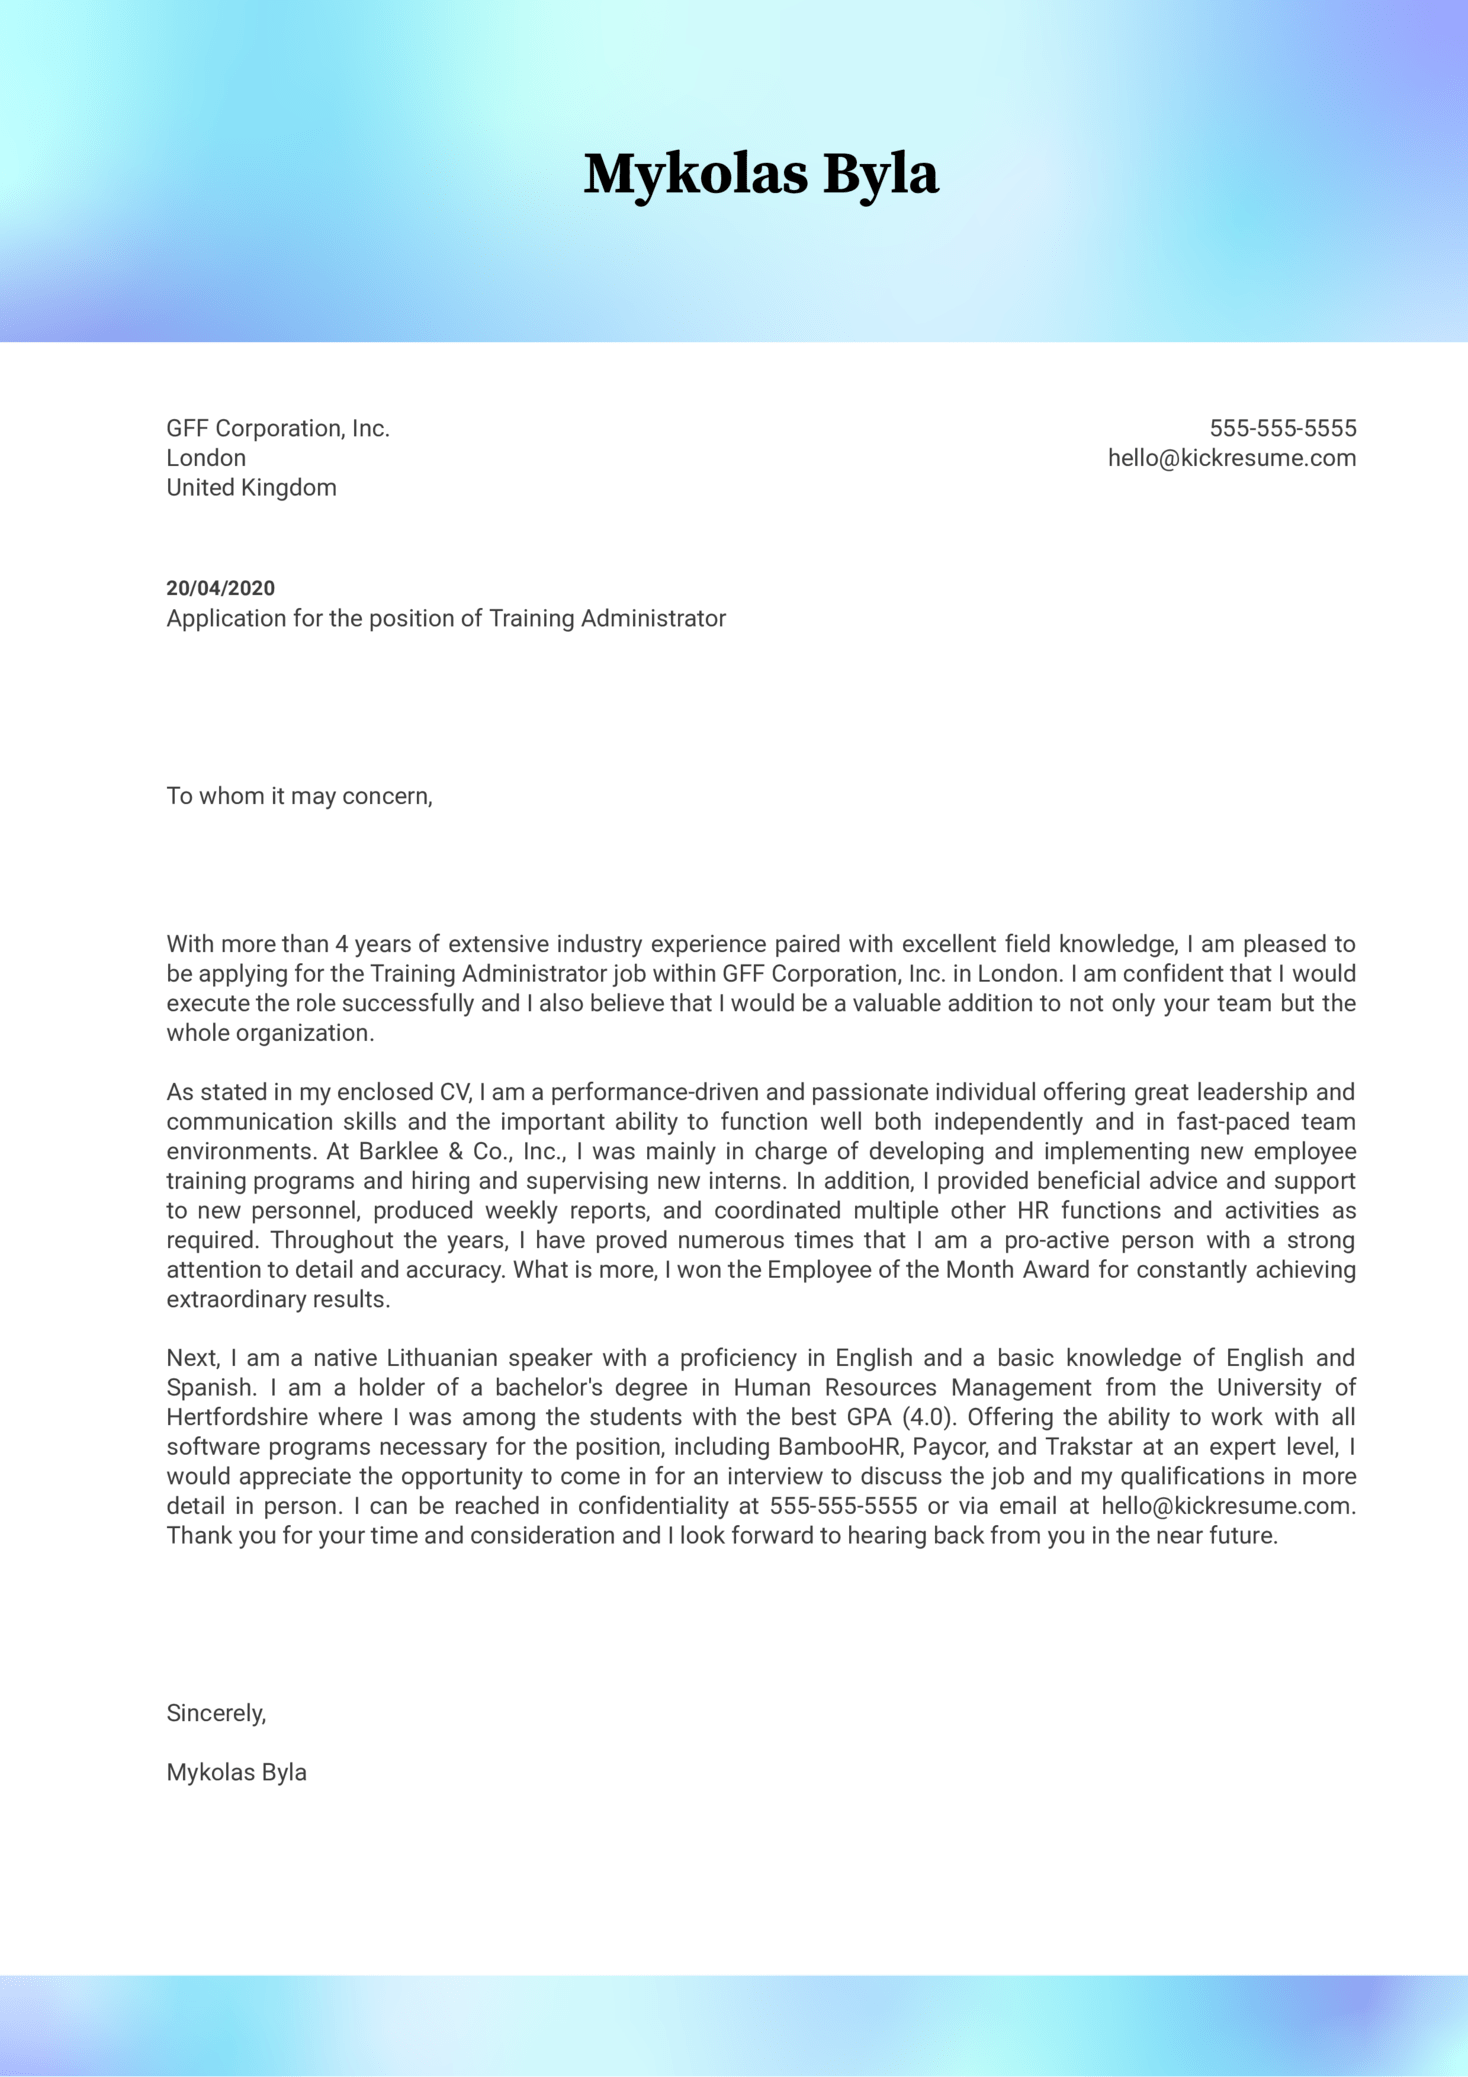 Training Administrator Cover Letter Example